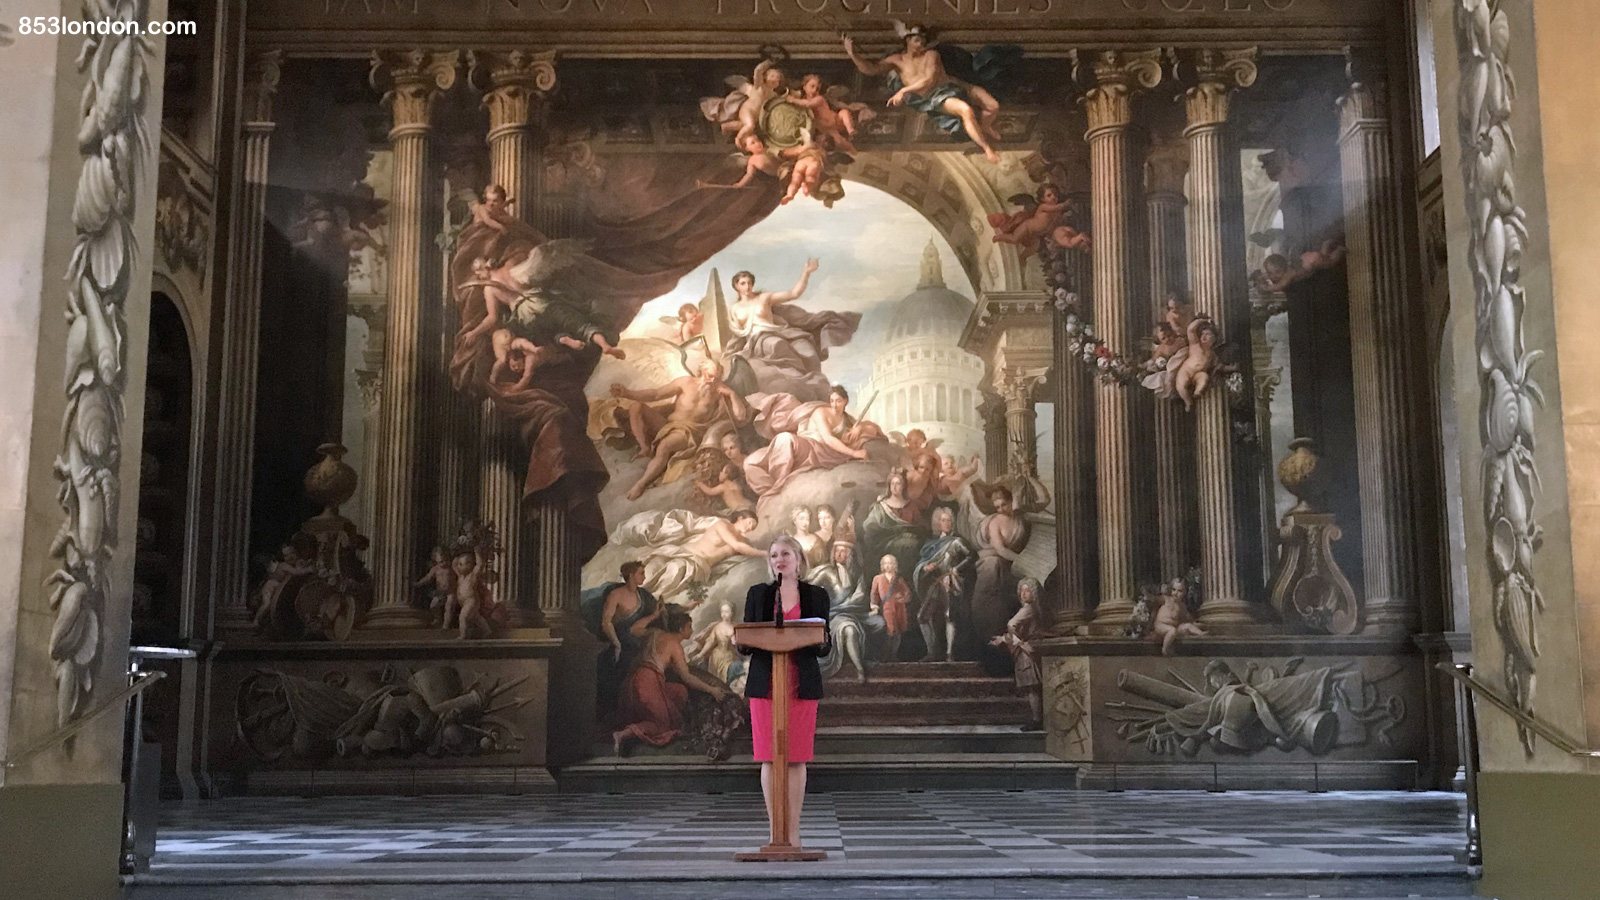 Greenwich's Painted Hall to reopen on Saturday with sea cadet parade